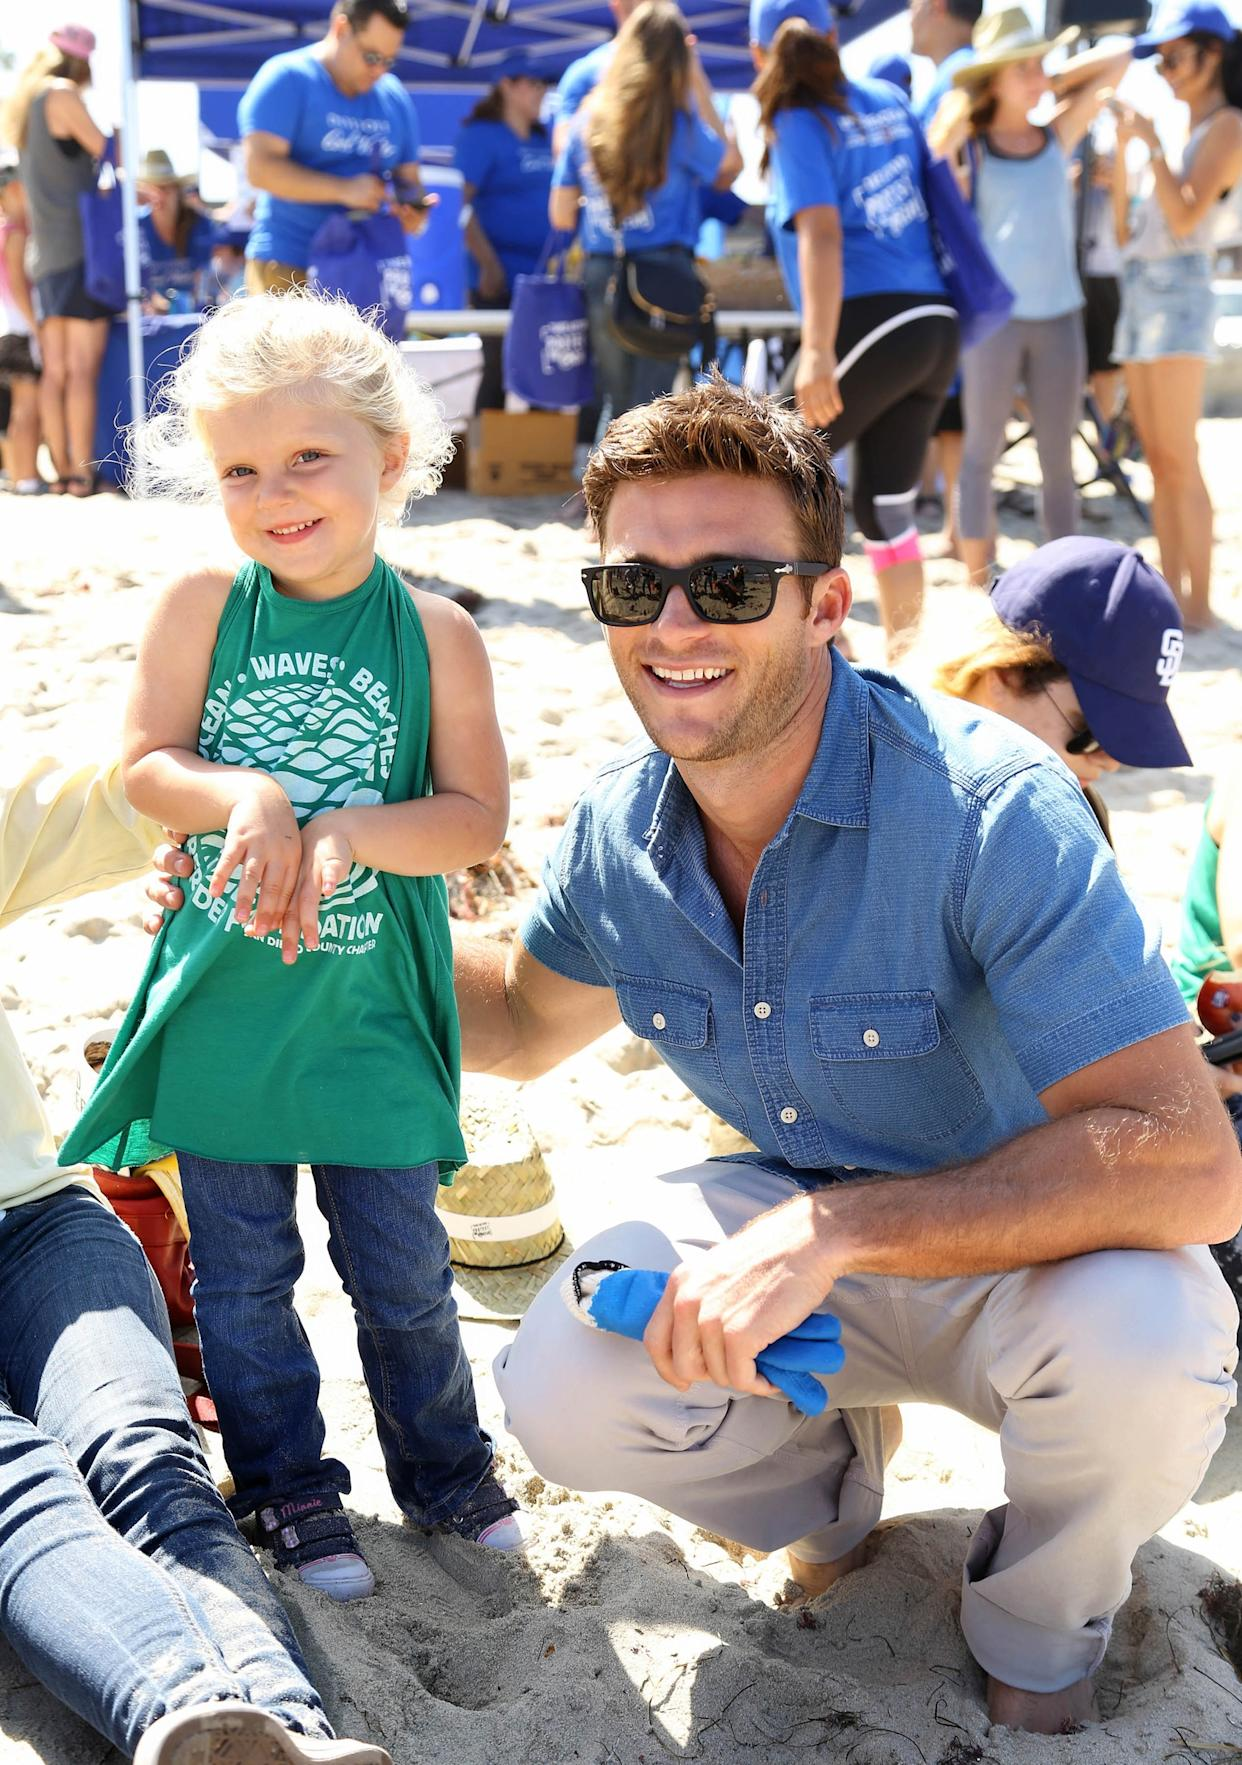 New York City -  July 10, 2016:  Looking good while doing good, Scott Eastwood, the face of Davidoff Cool Water, supports the brand's #LoveTheOcean campaign at a beach cleaunp in Ocean Beach. -  PICTURED: Scott Eastwood with fan- PHOTO BY: Sara Jaye Weiss/StartraksPhoto.com